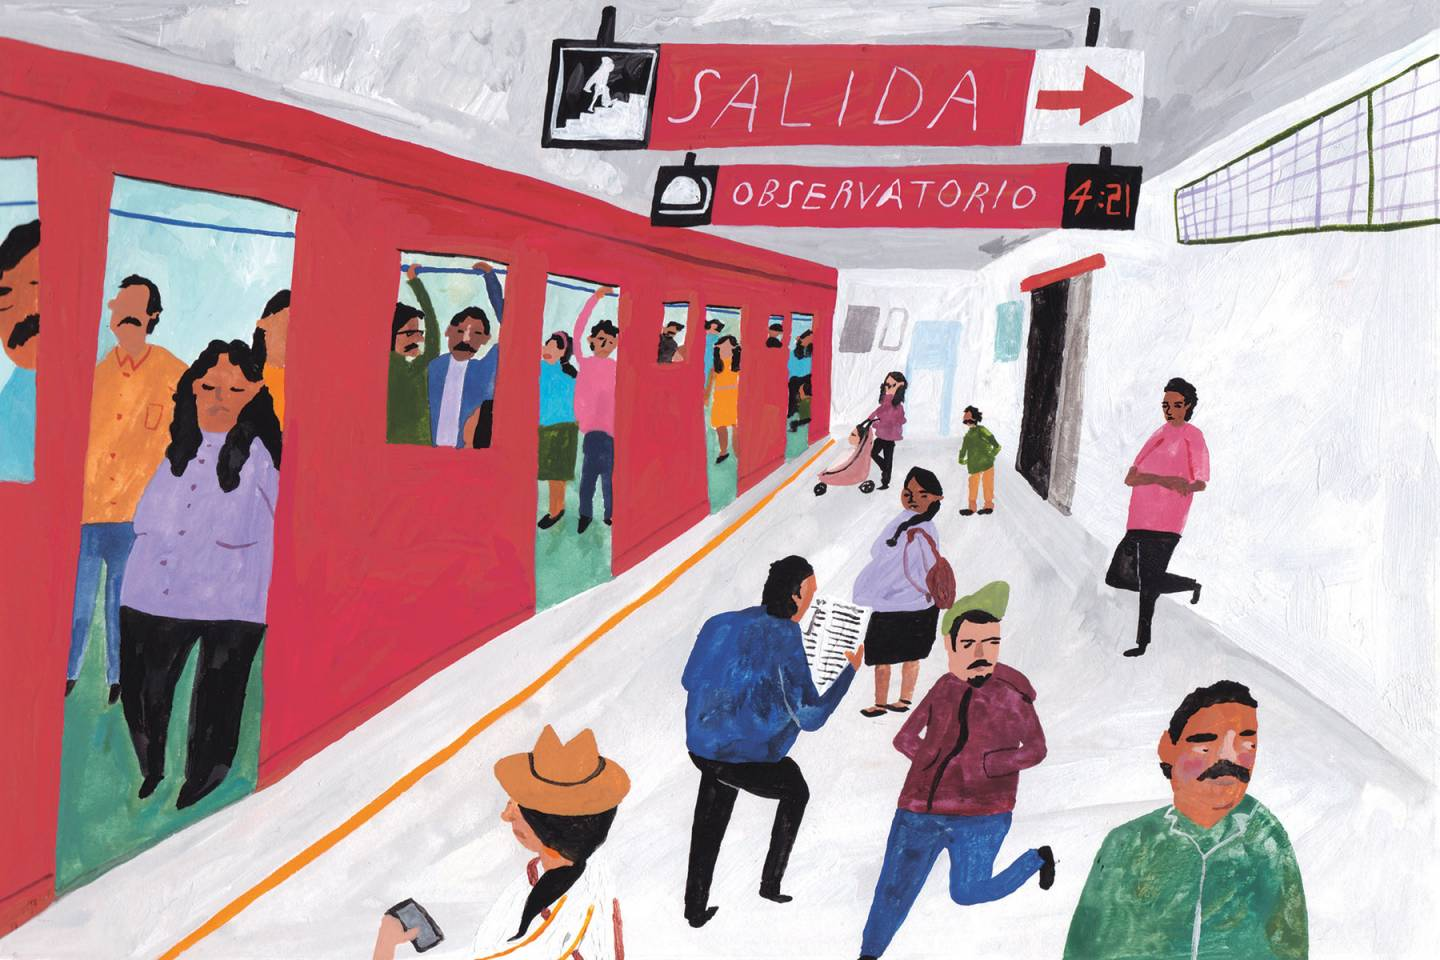 Lindsay | The Magic of Mexico City's Underground Metro | Illustration by Liz Rowland for Lindsay